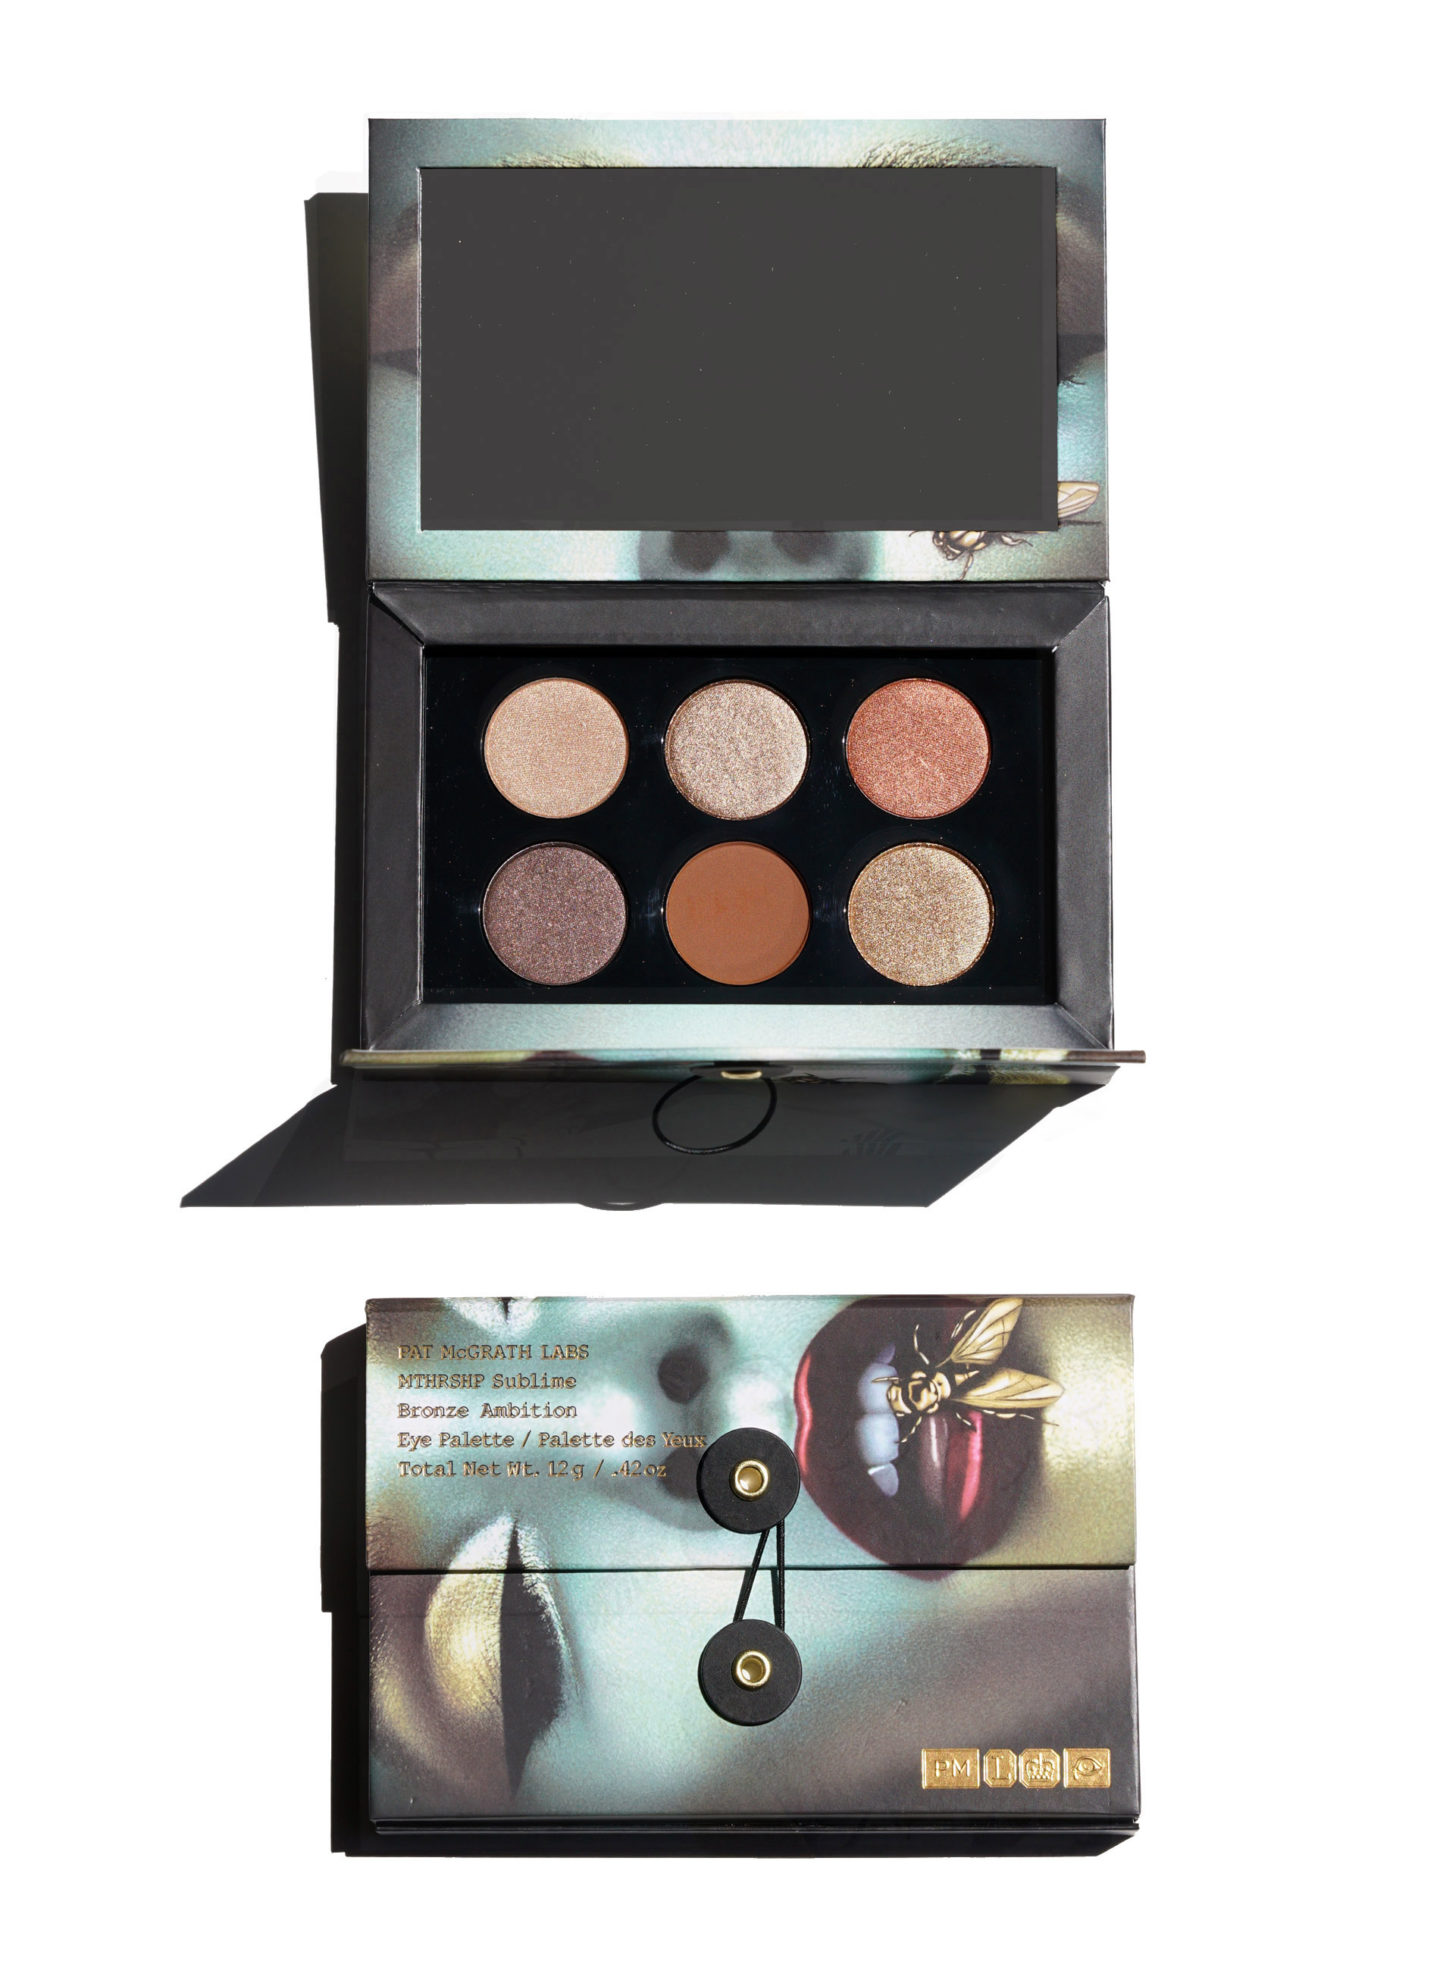 Pat McGrath Labs MTHRSHP Sublime Bronze Ambition | The Beauty Look Book